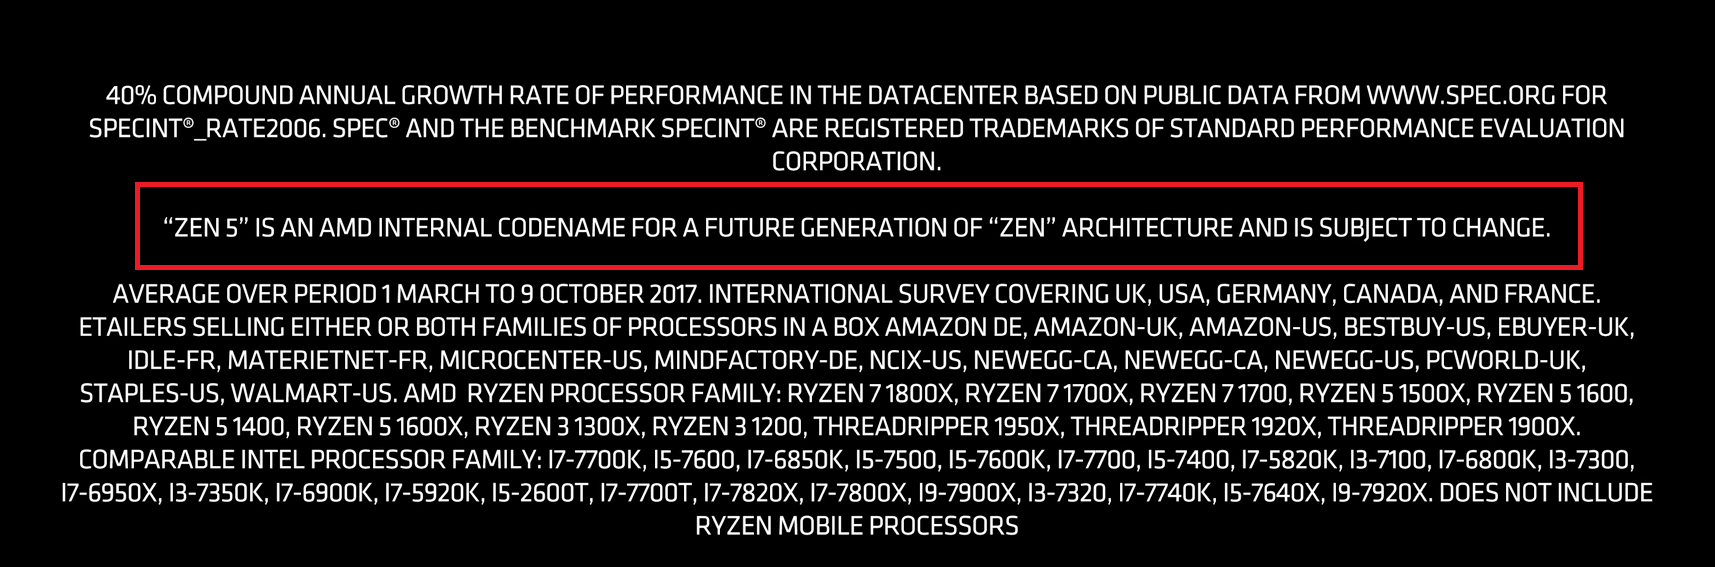 amd-video-ryzen-zen-5